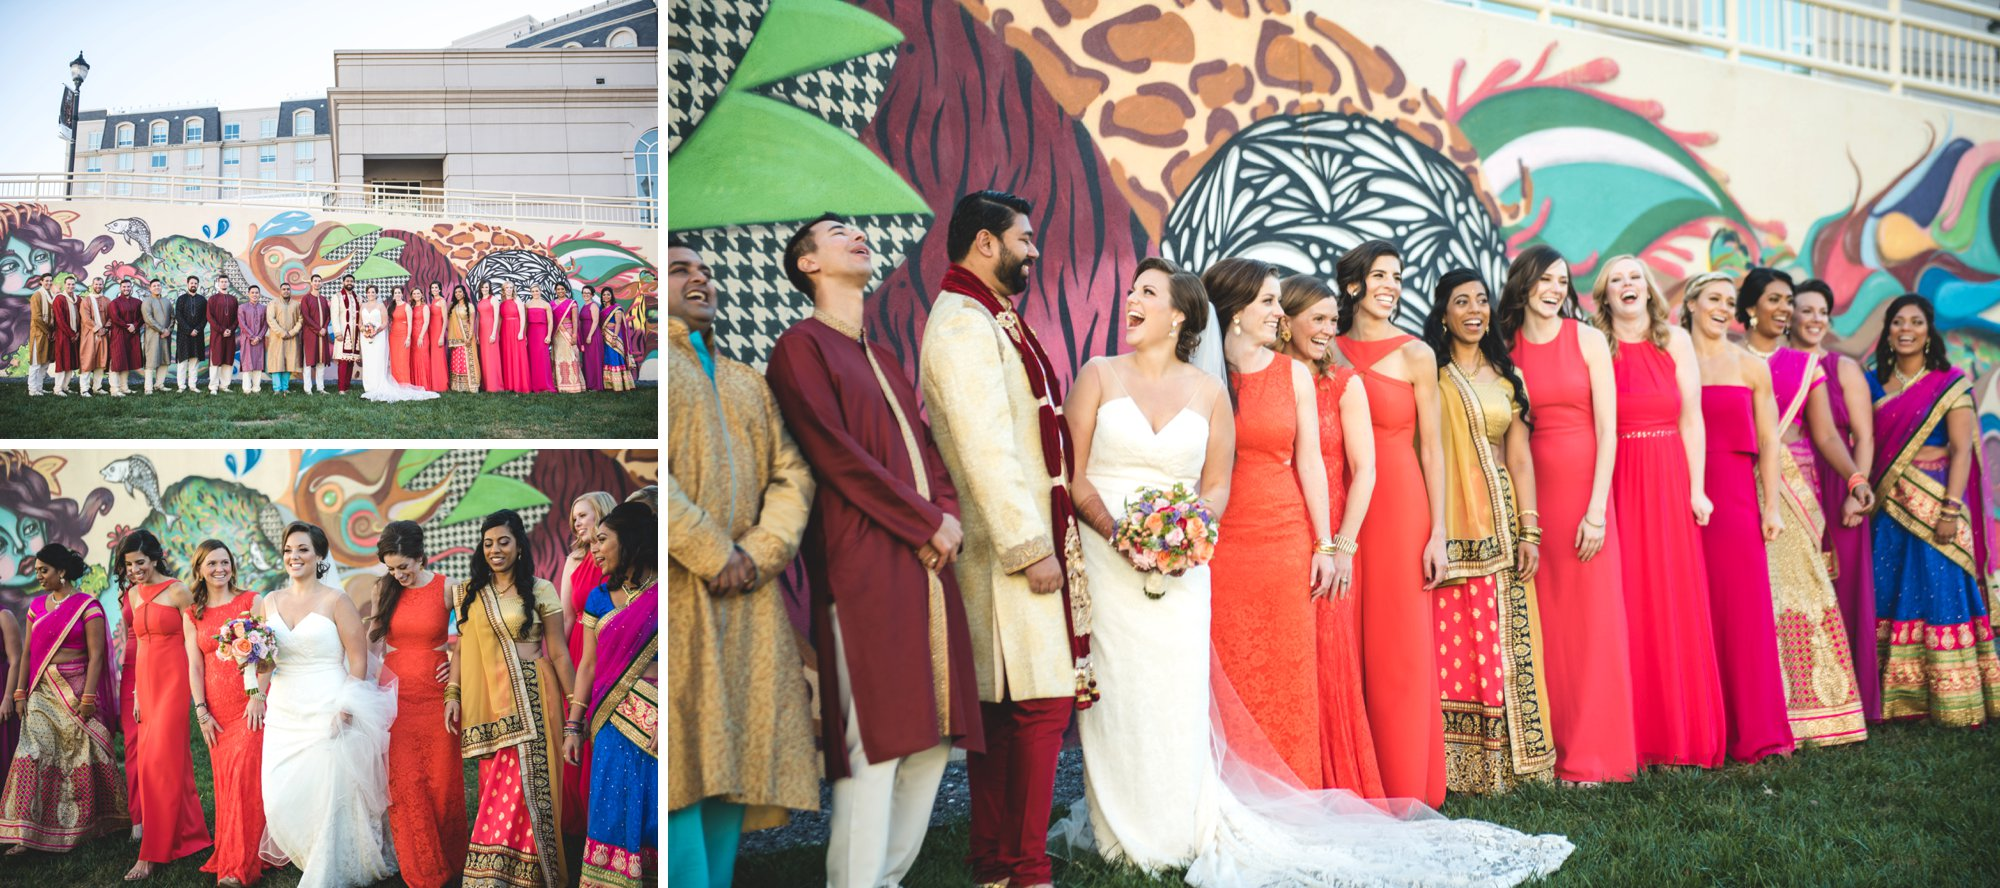 Washington DC colorful Indian wedding with a feminist bride. Diverse bridal party.